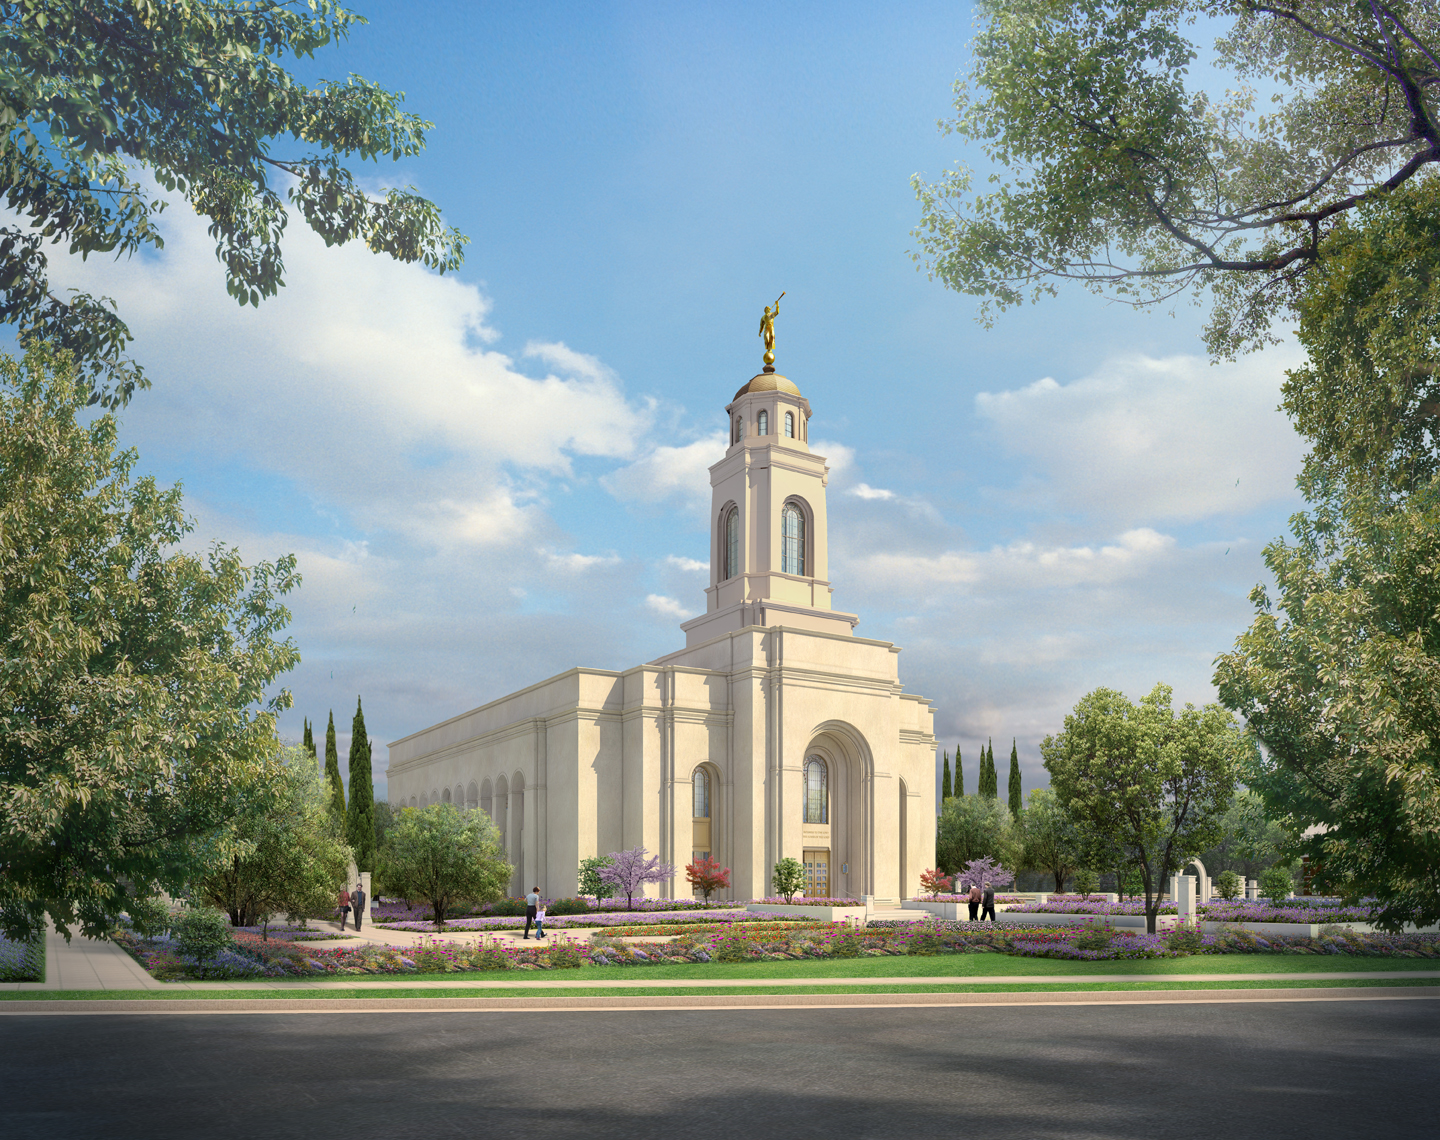 An exterior rendering of the Feather River California Temple of The Church of Jesus Christ of Latter-day Saints.